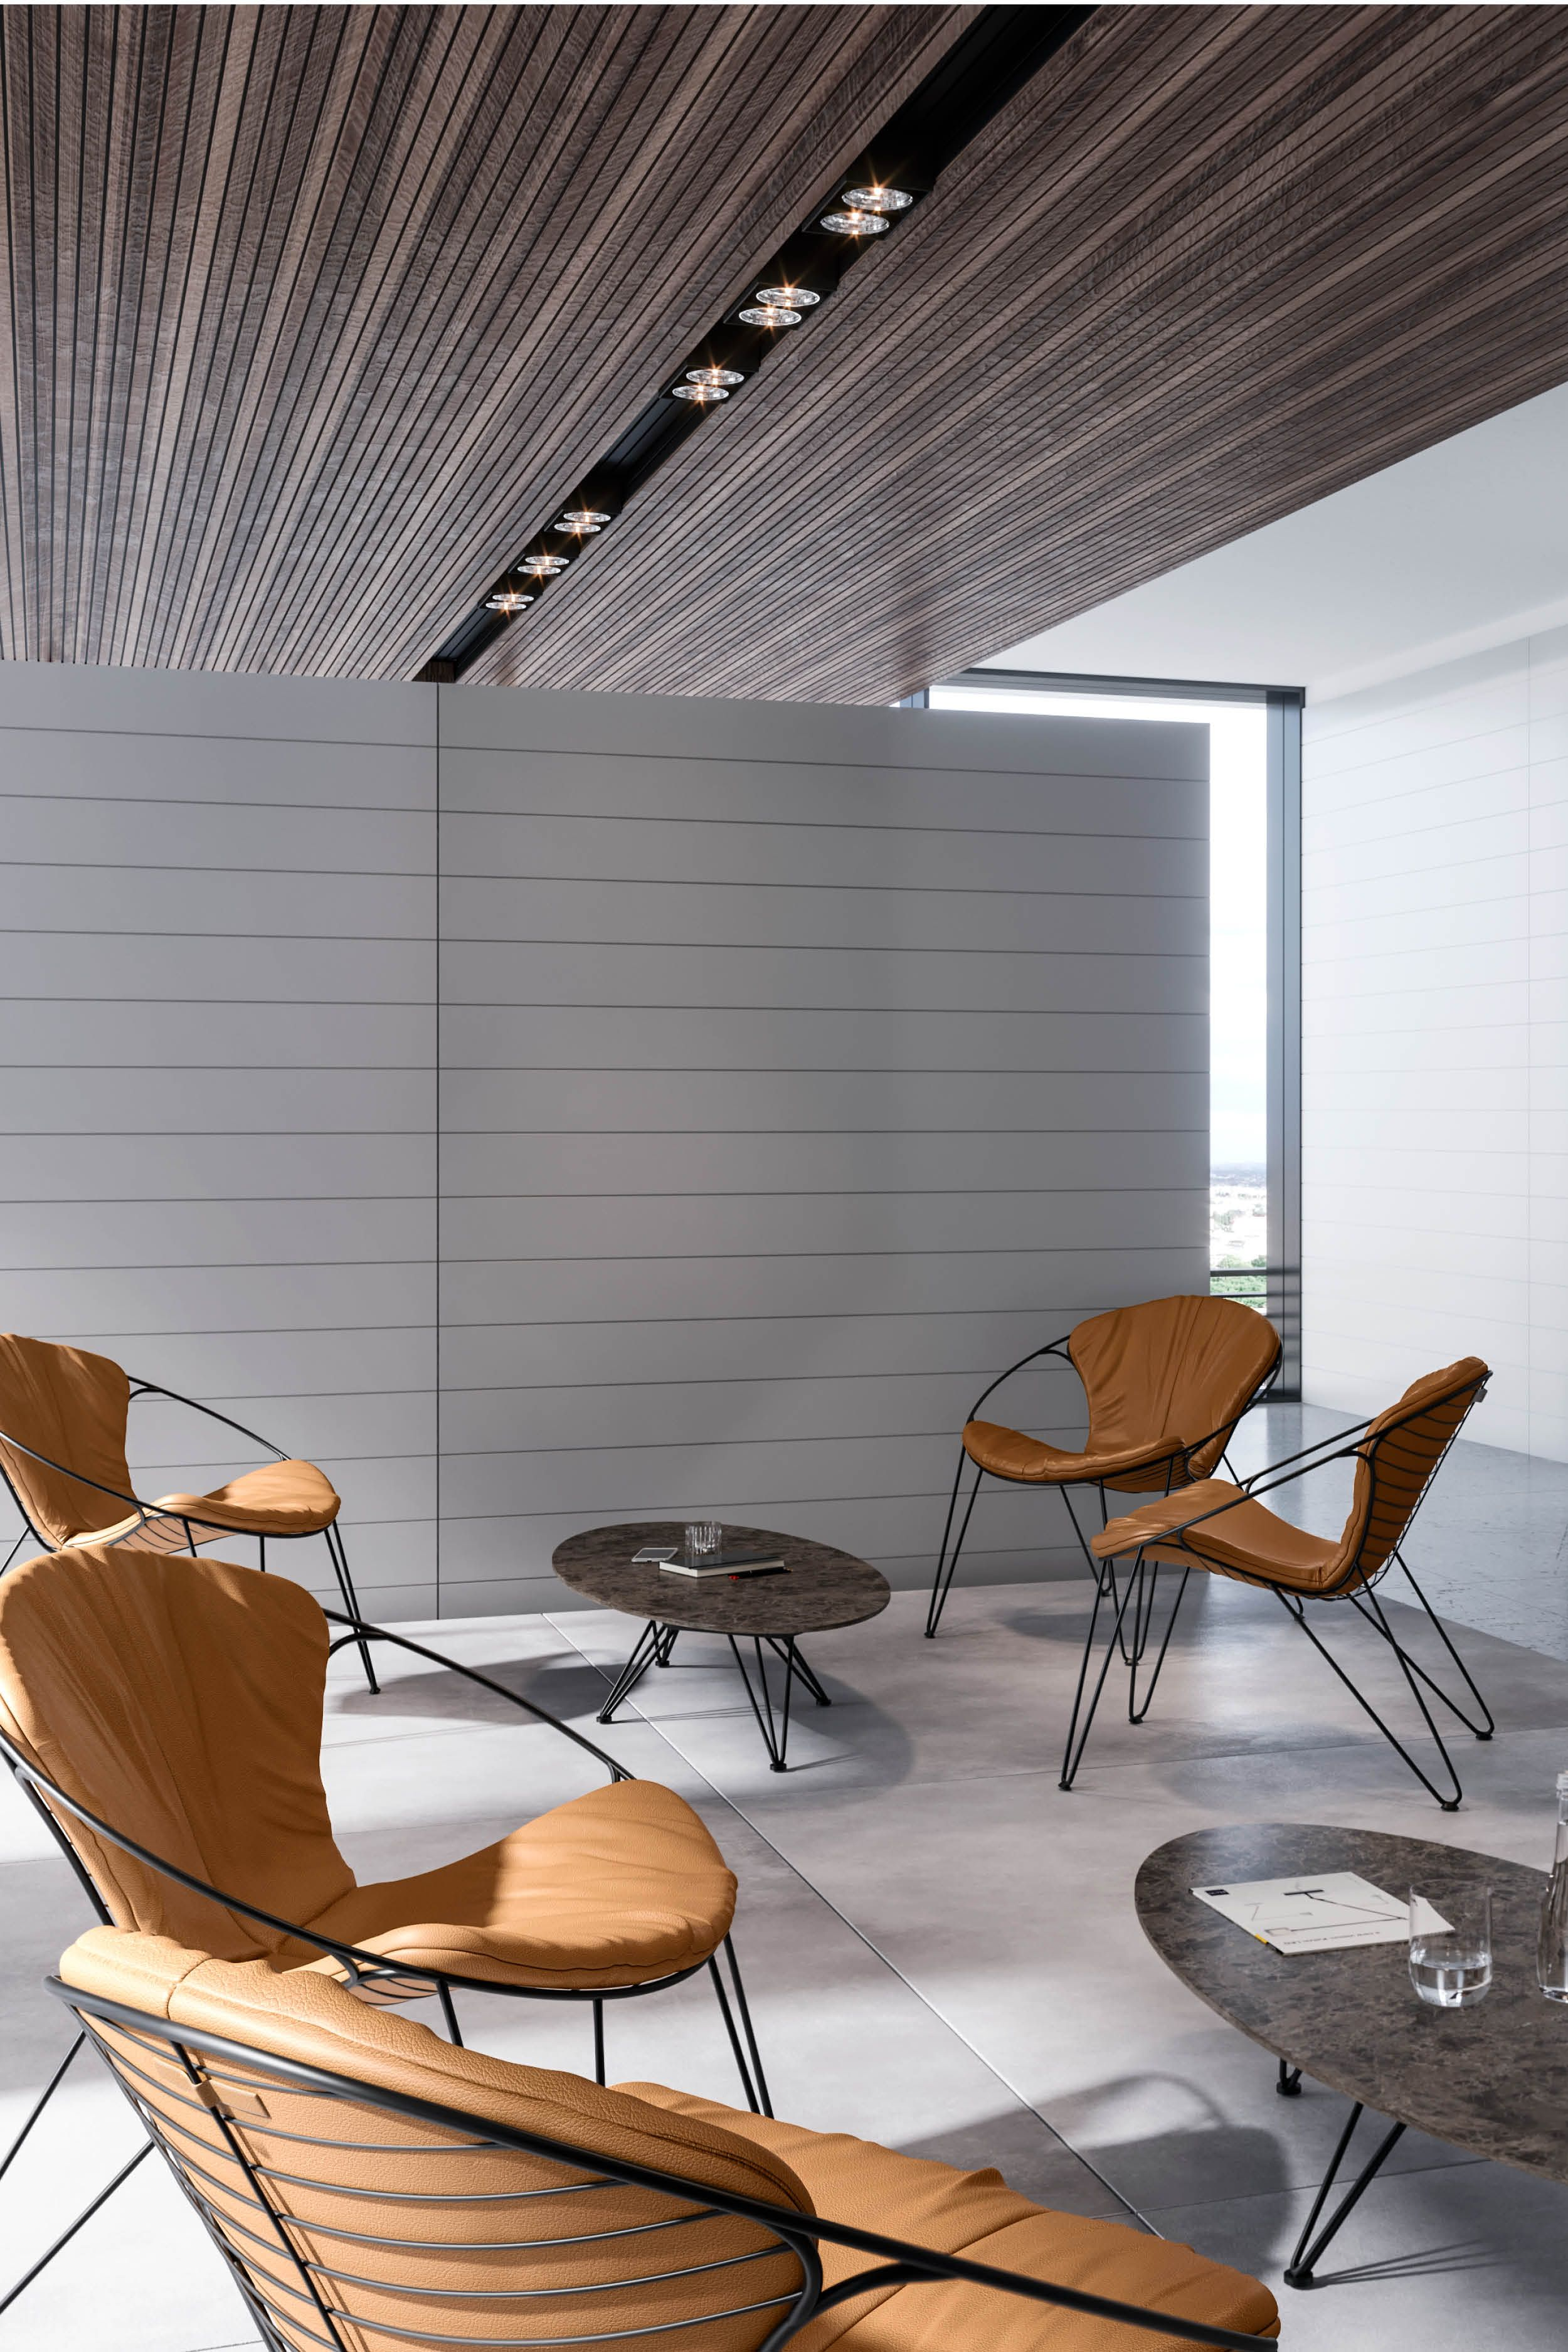 Turn a waiting room into a meeting place. Let your visitors relax while waiting in the beautiful WIRE chairs. #chair #chairs #chairdesign #chairdecor #designchairs #cognaccolor #cognaccolour #waitingroom